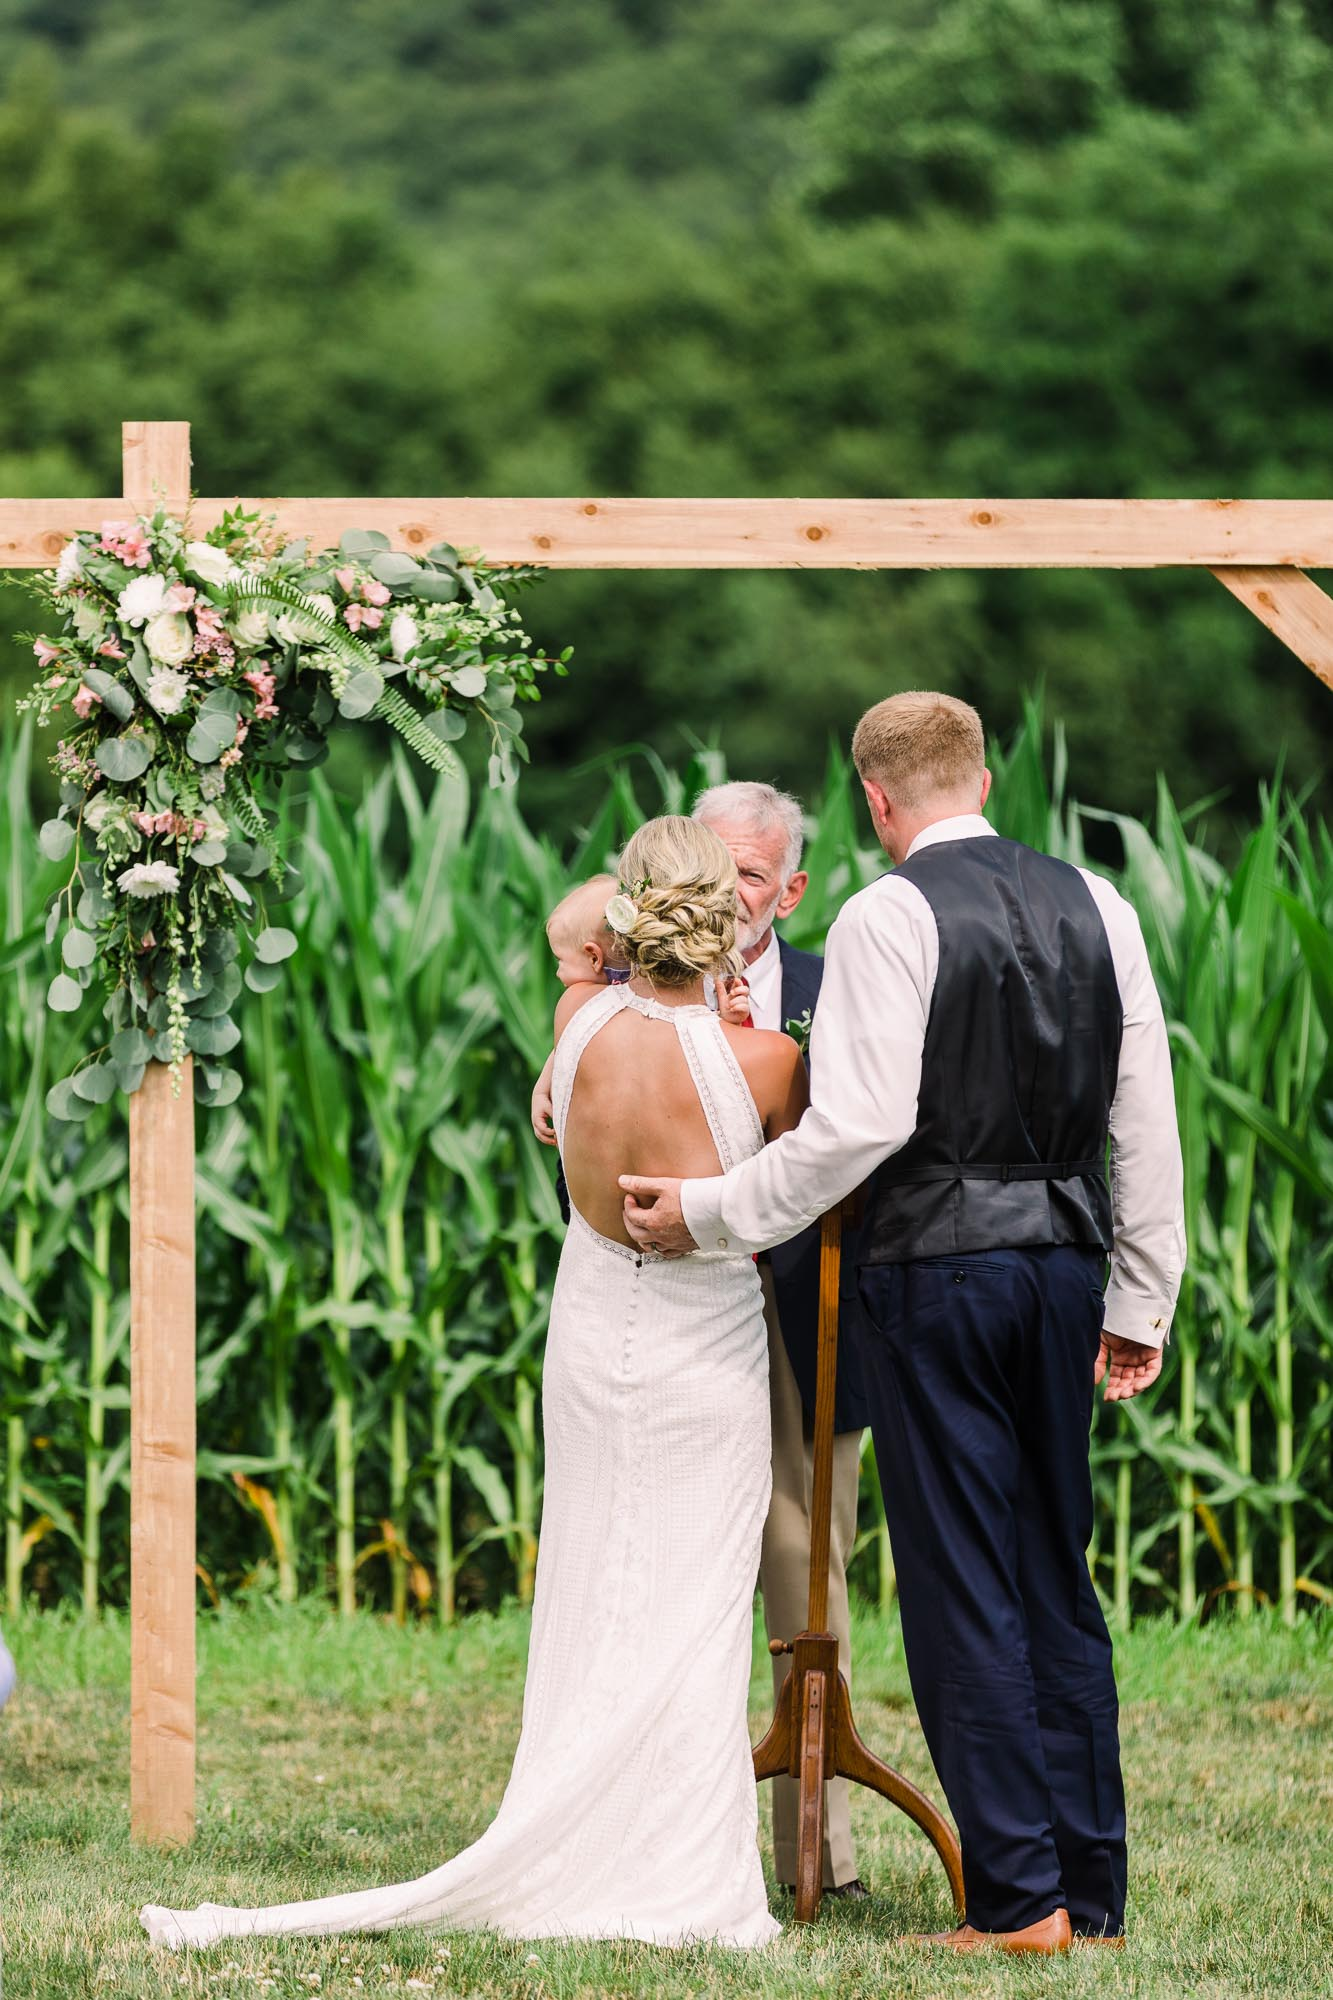 Muncy-backyard-farm-wedding-4998.jpg